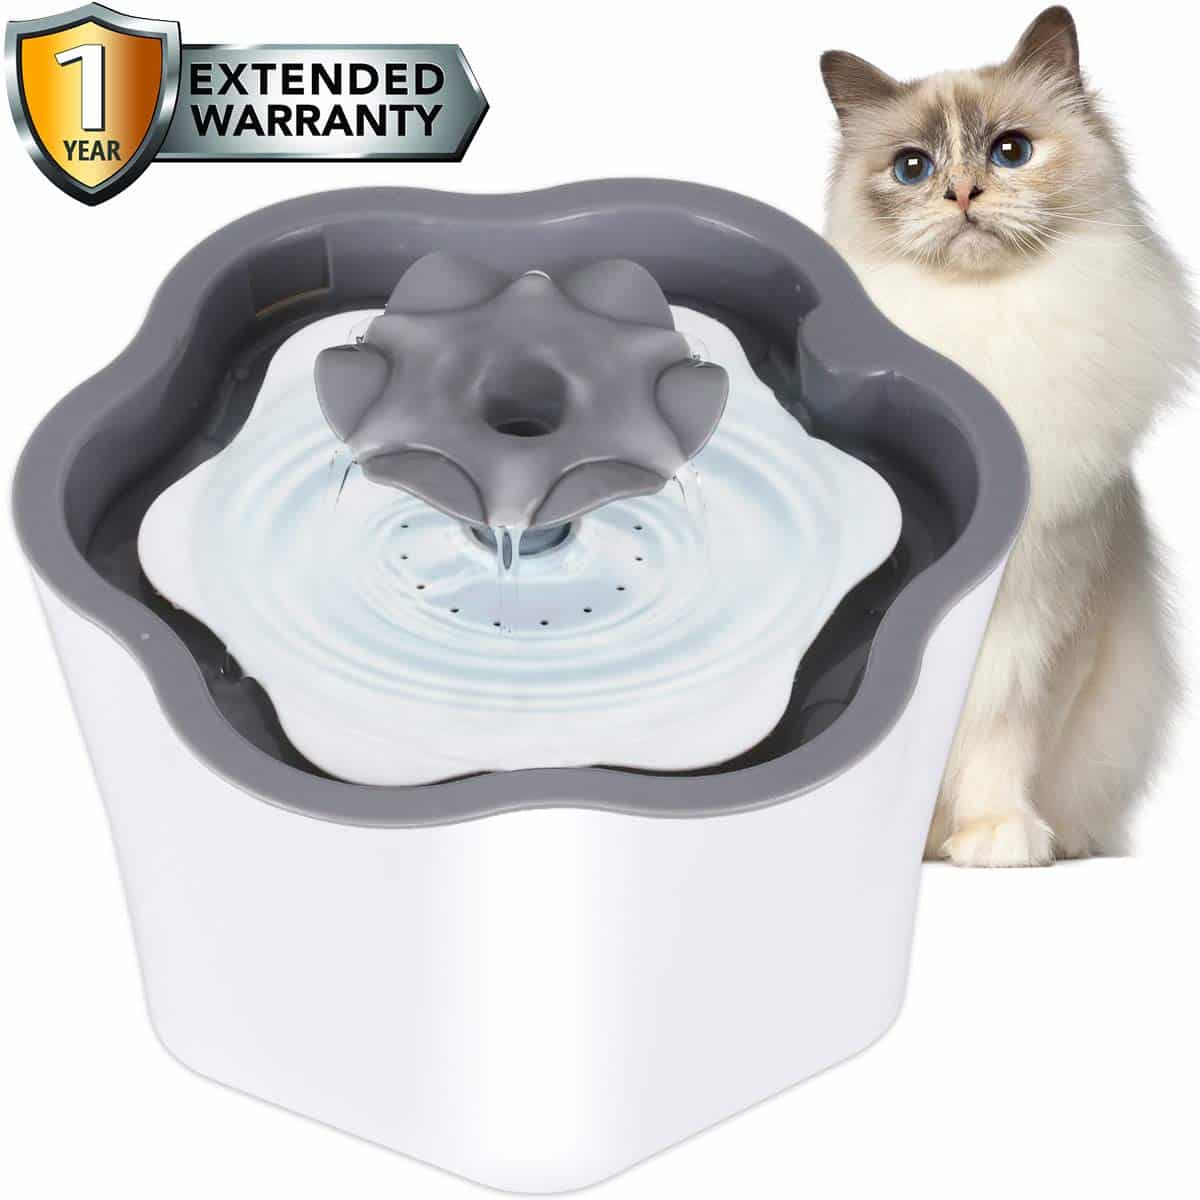 6. Cat Water Fountain with Filter 2L